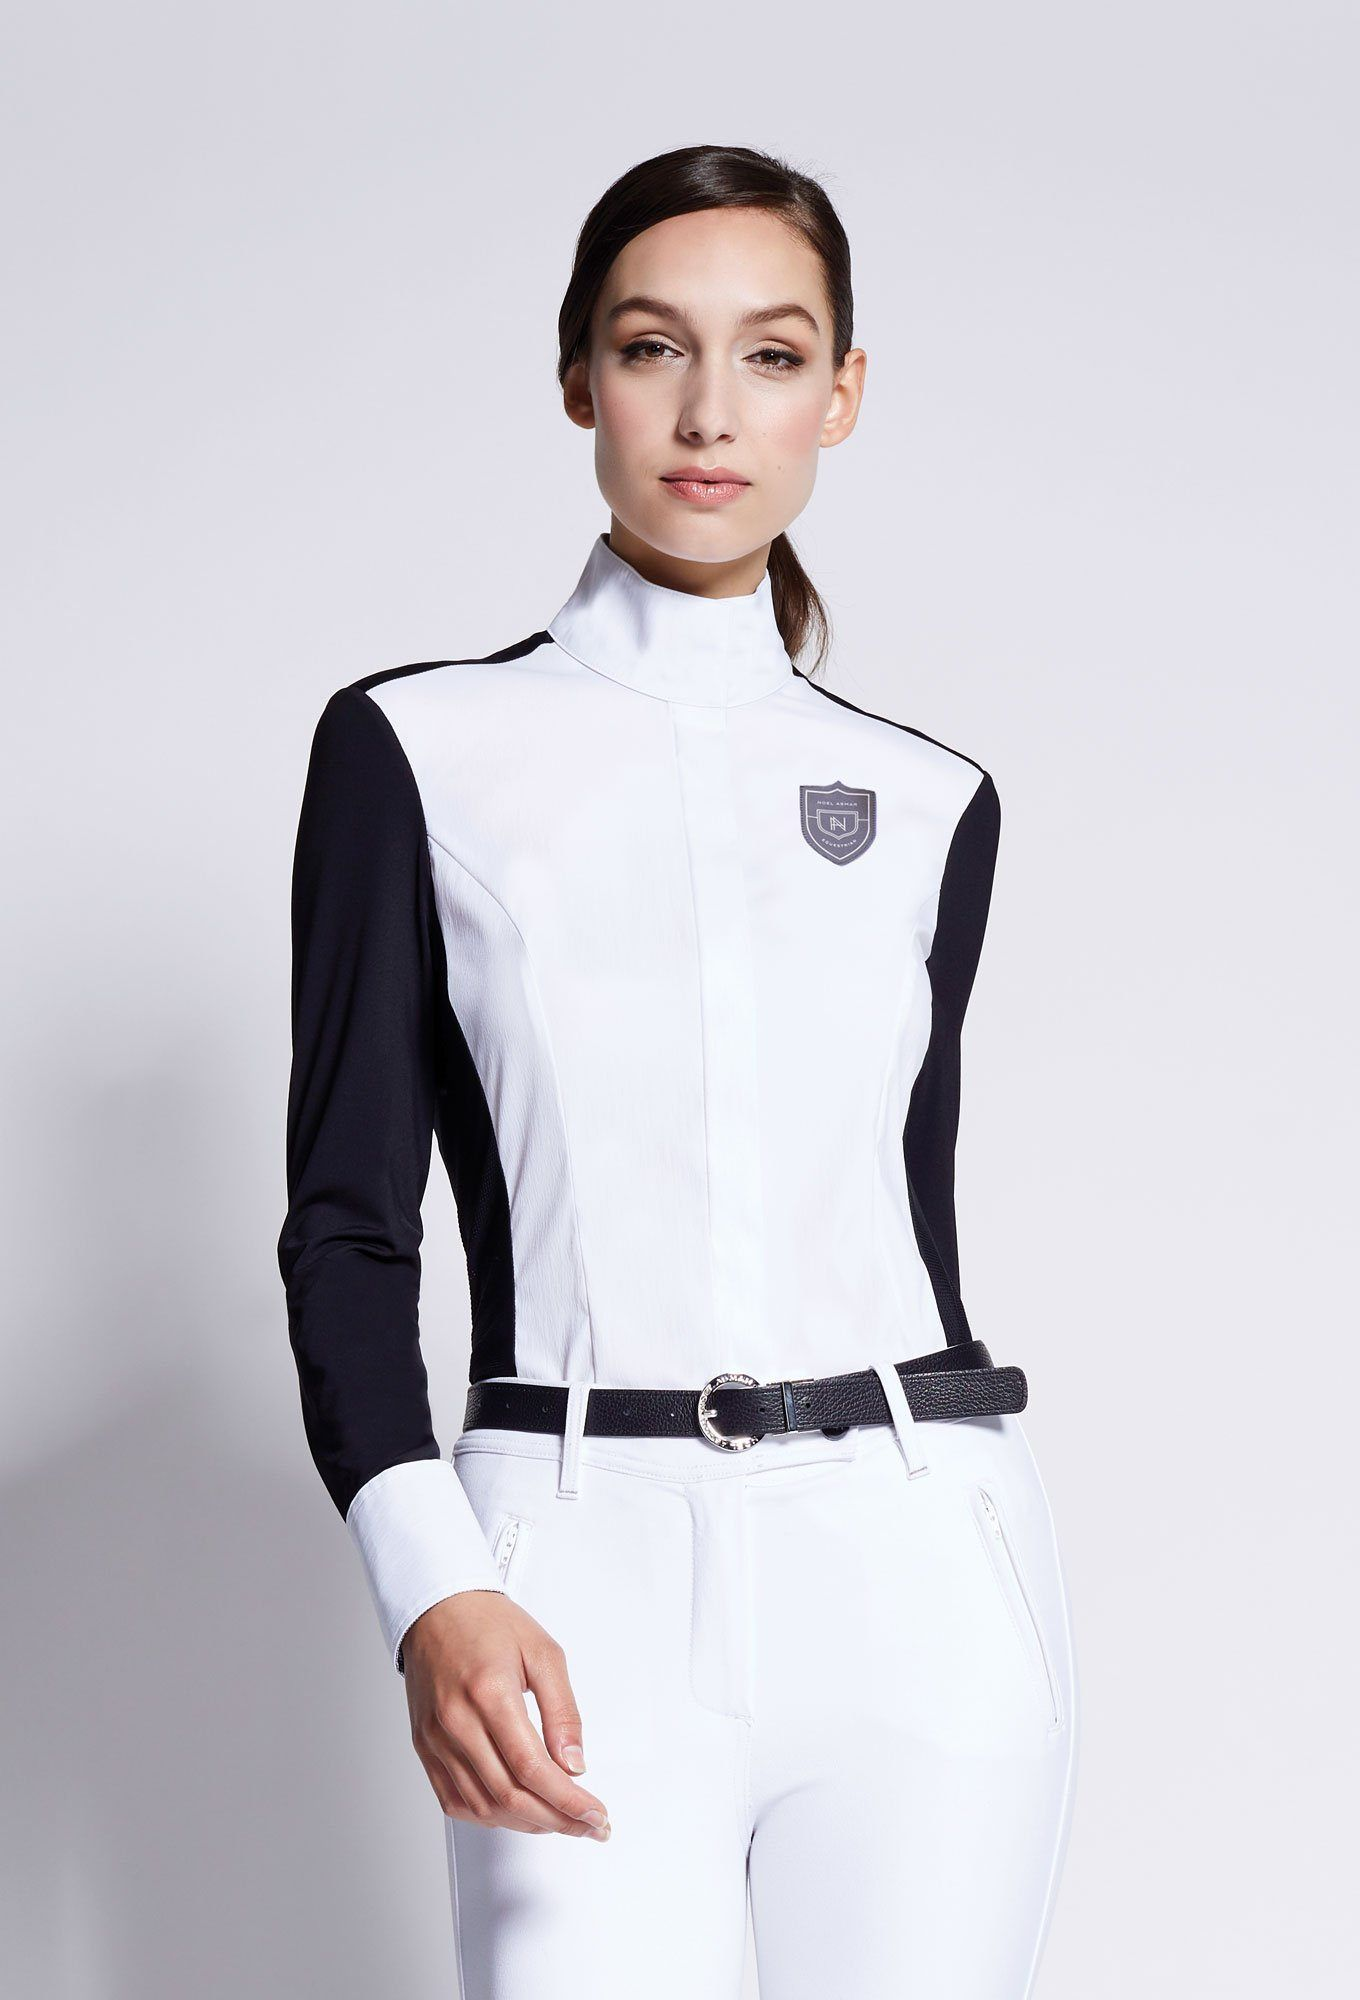 Asmar Costa Cooling Shirt Fashion Women S Equestrian Riding Outfit